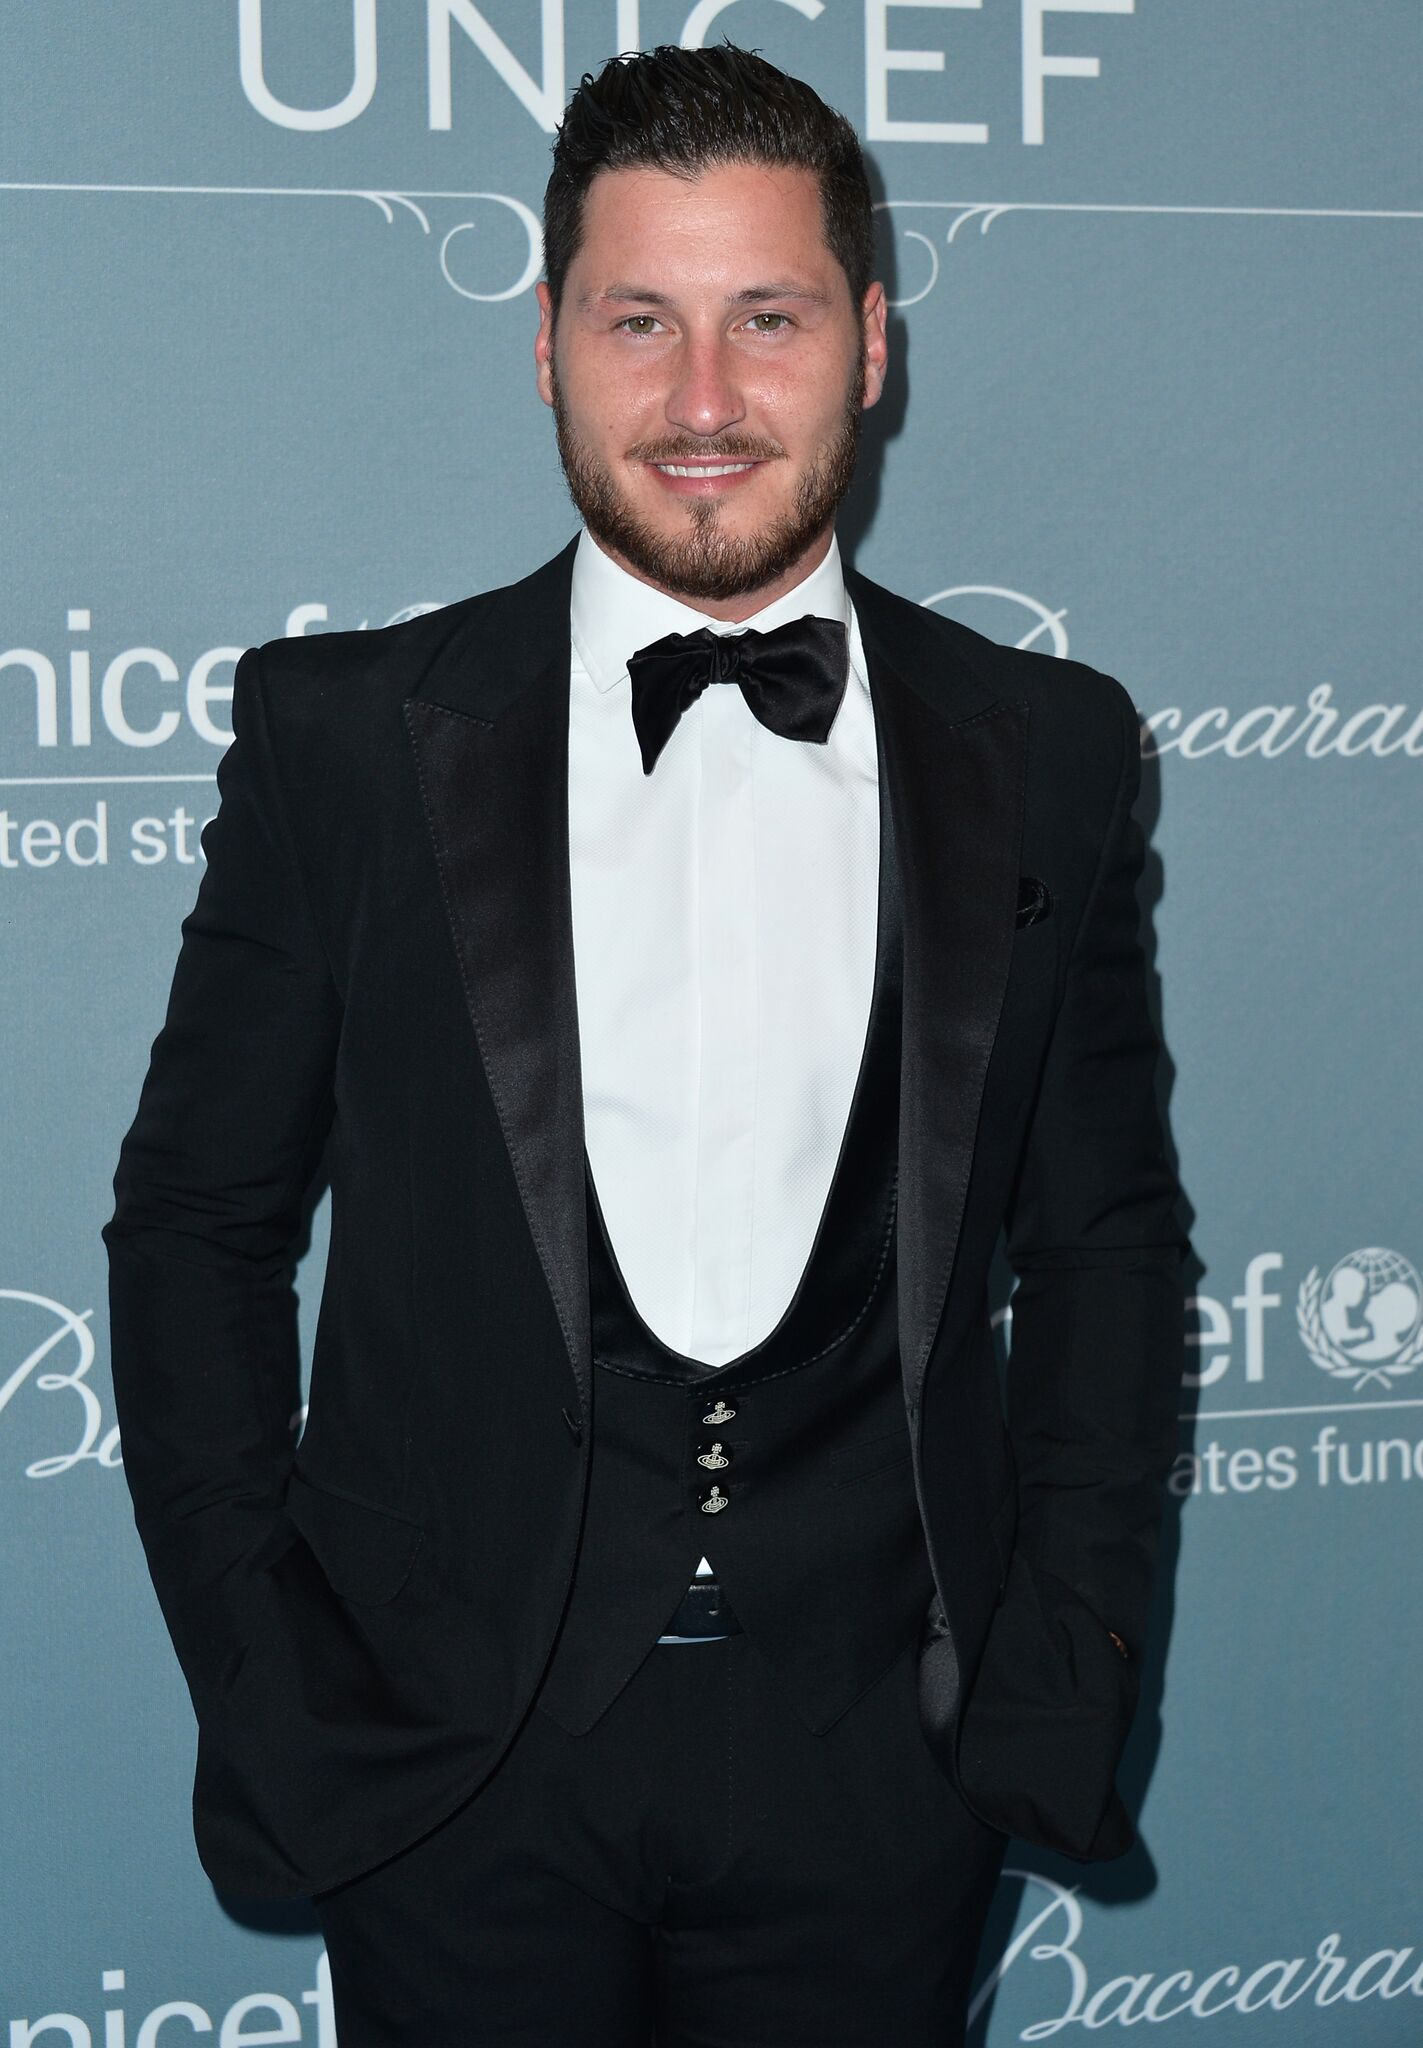 Val Chmerkovskiy arrives to the 2014 UNICEF Ball Presented by Baccarat at the Regent Beverly Wilshire Hotel | Getty Images / Global Images Ukraine